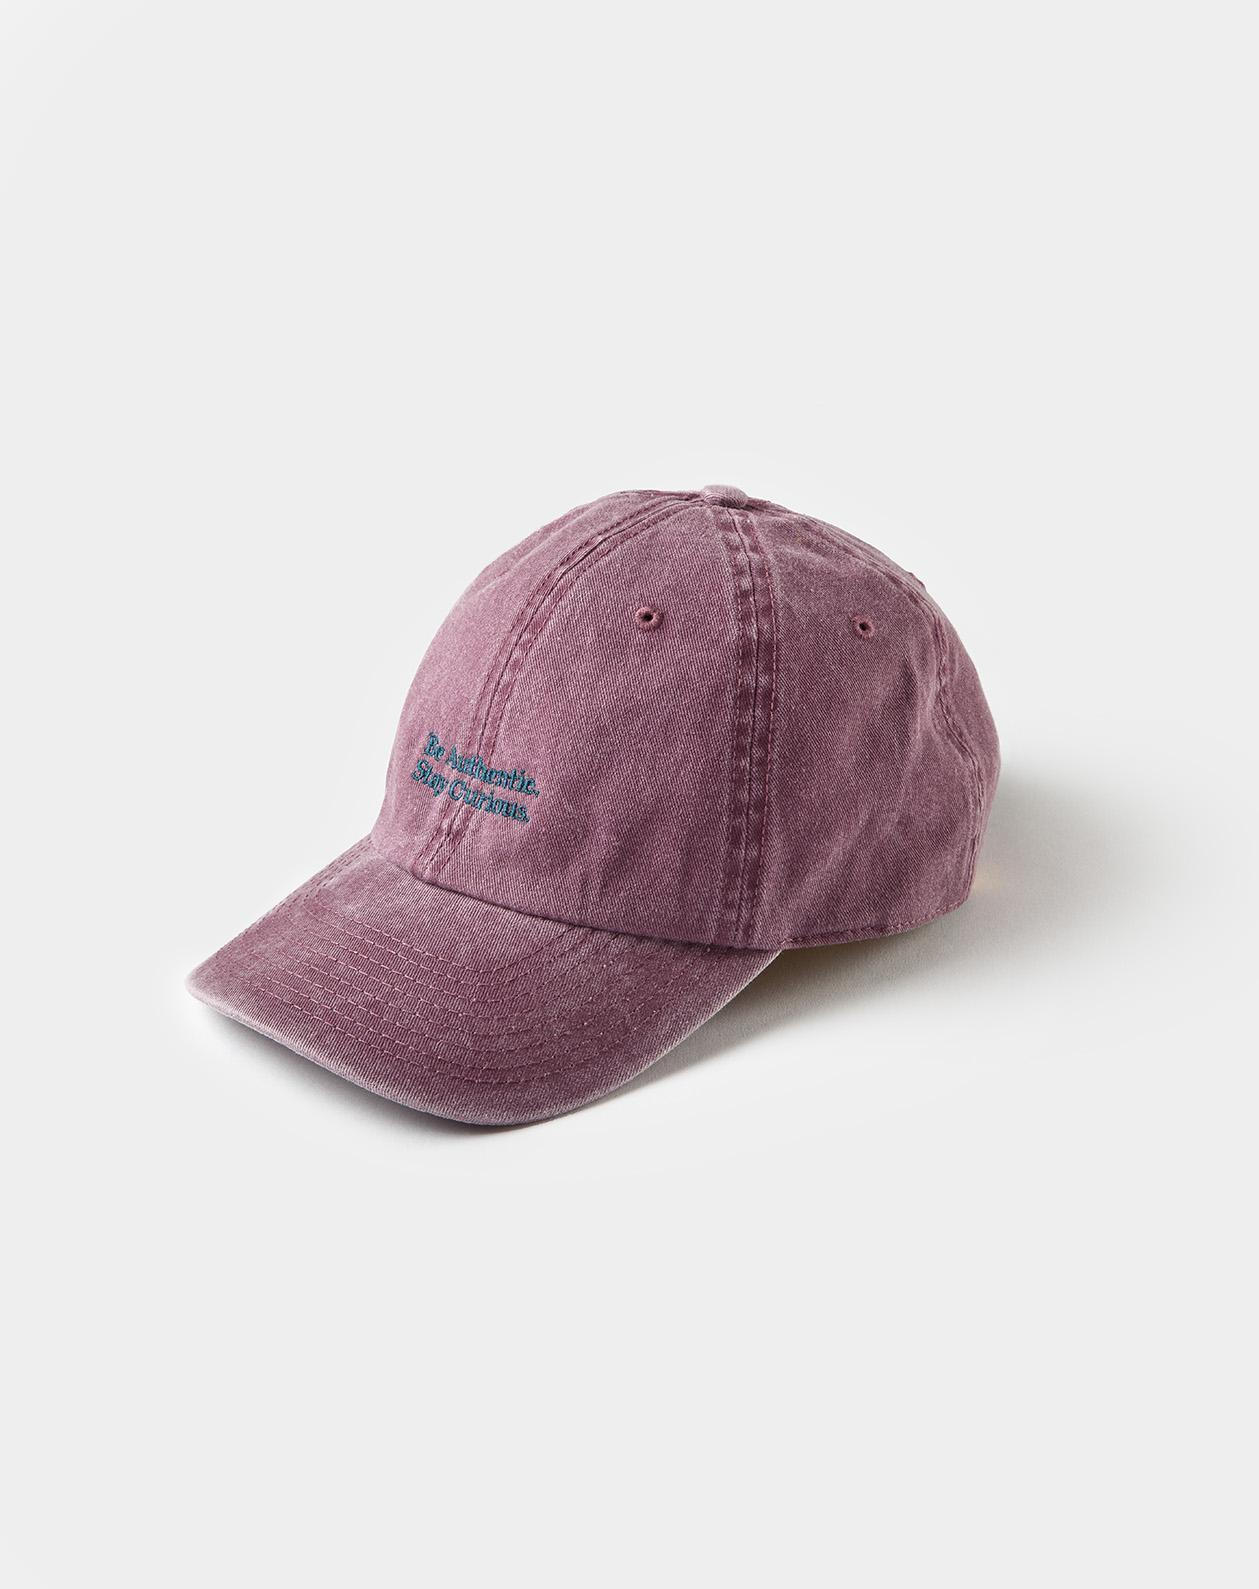 Washed Cotton cap Burgundy